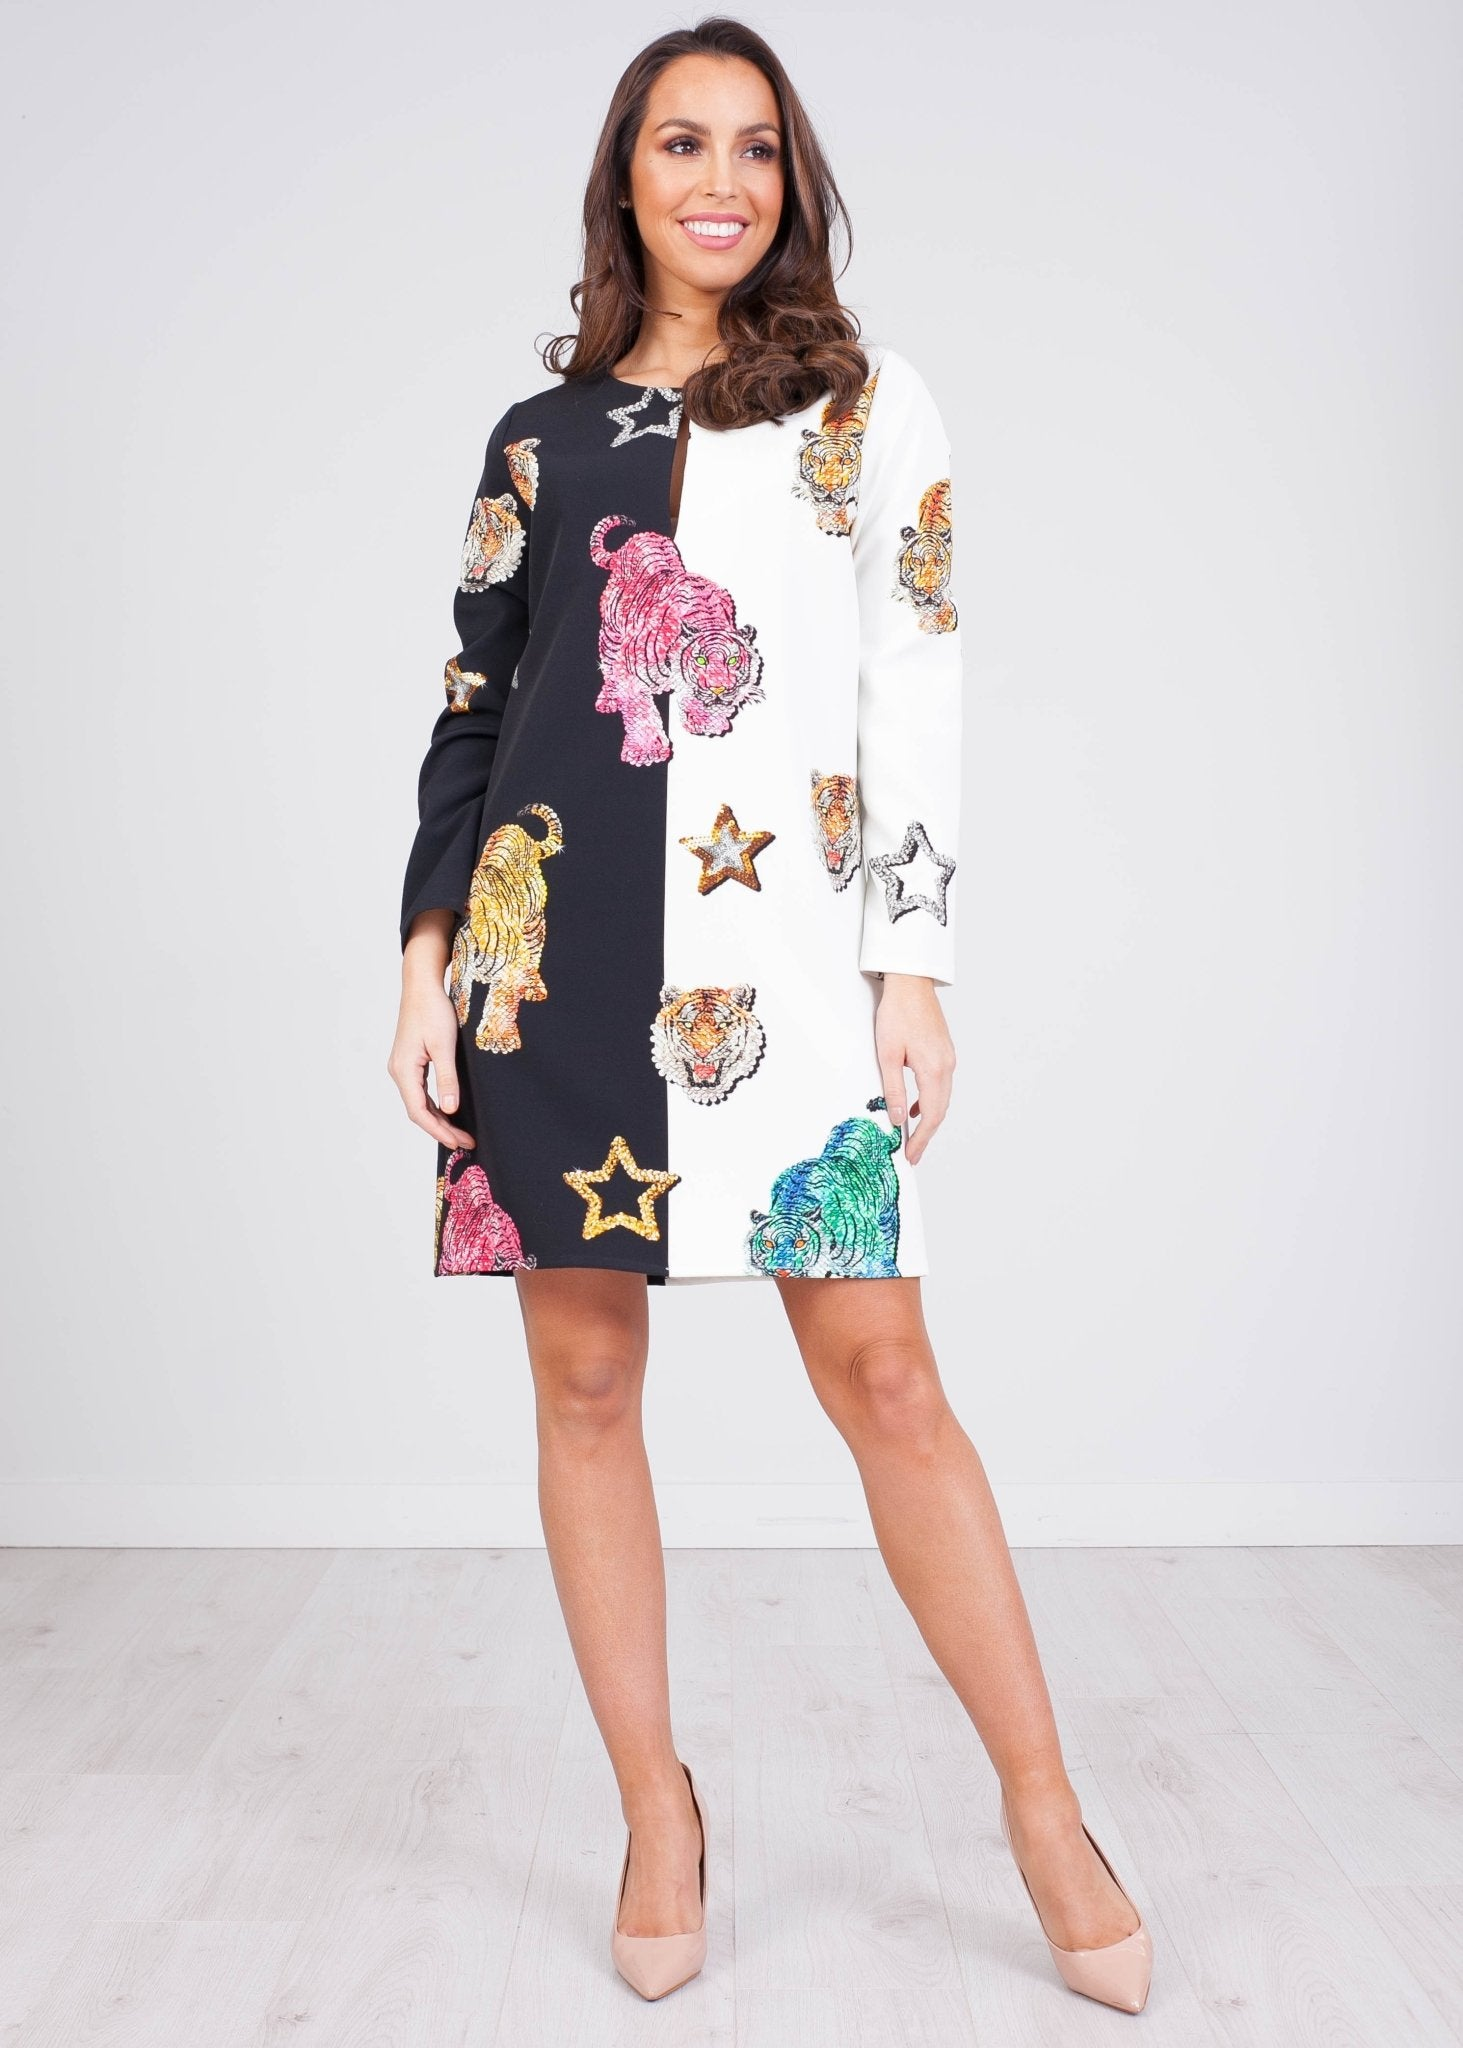 Marissa Multiprint Dress - The Walk in Wardrobe